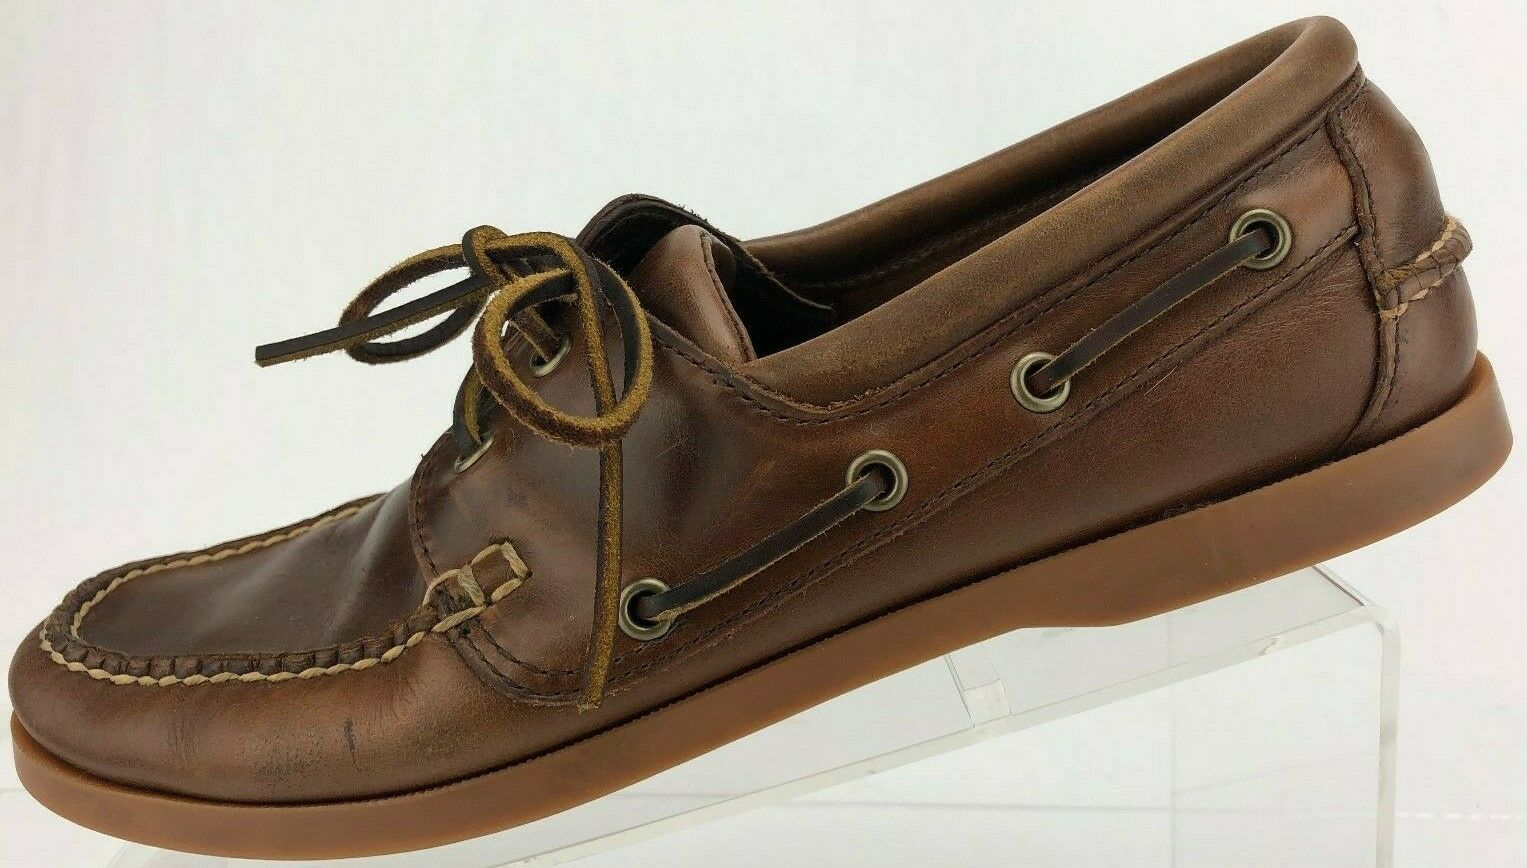 Brooks Bredhers Boat shoes 2 Eye Brown Driving Moc Toe Leather Deck Mens 9 D